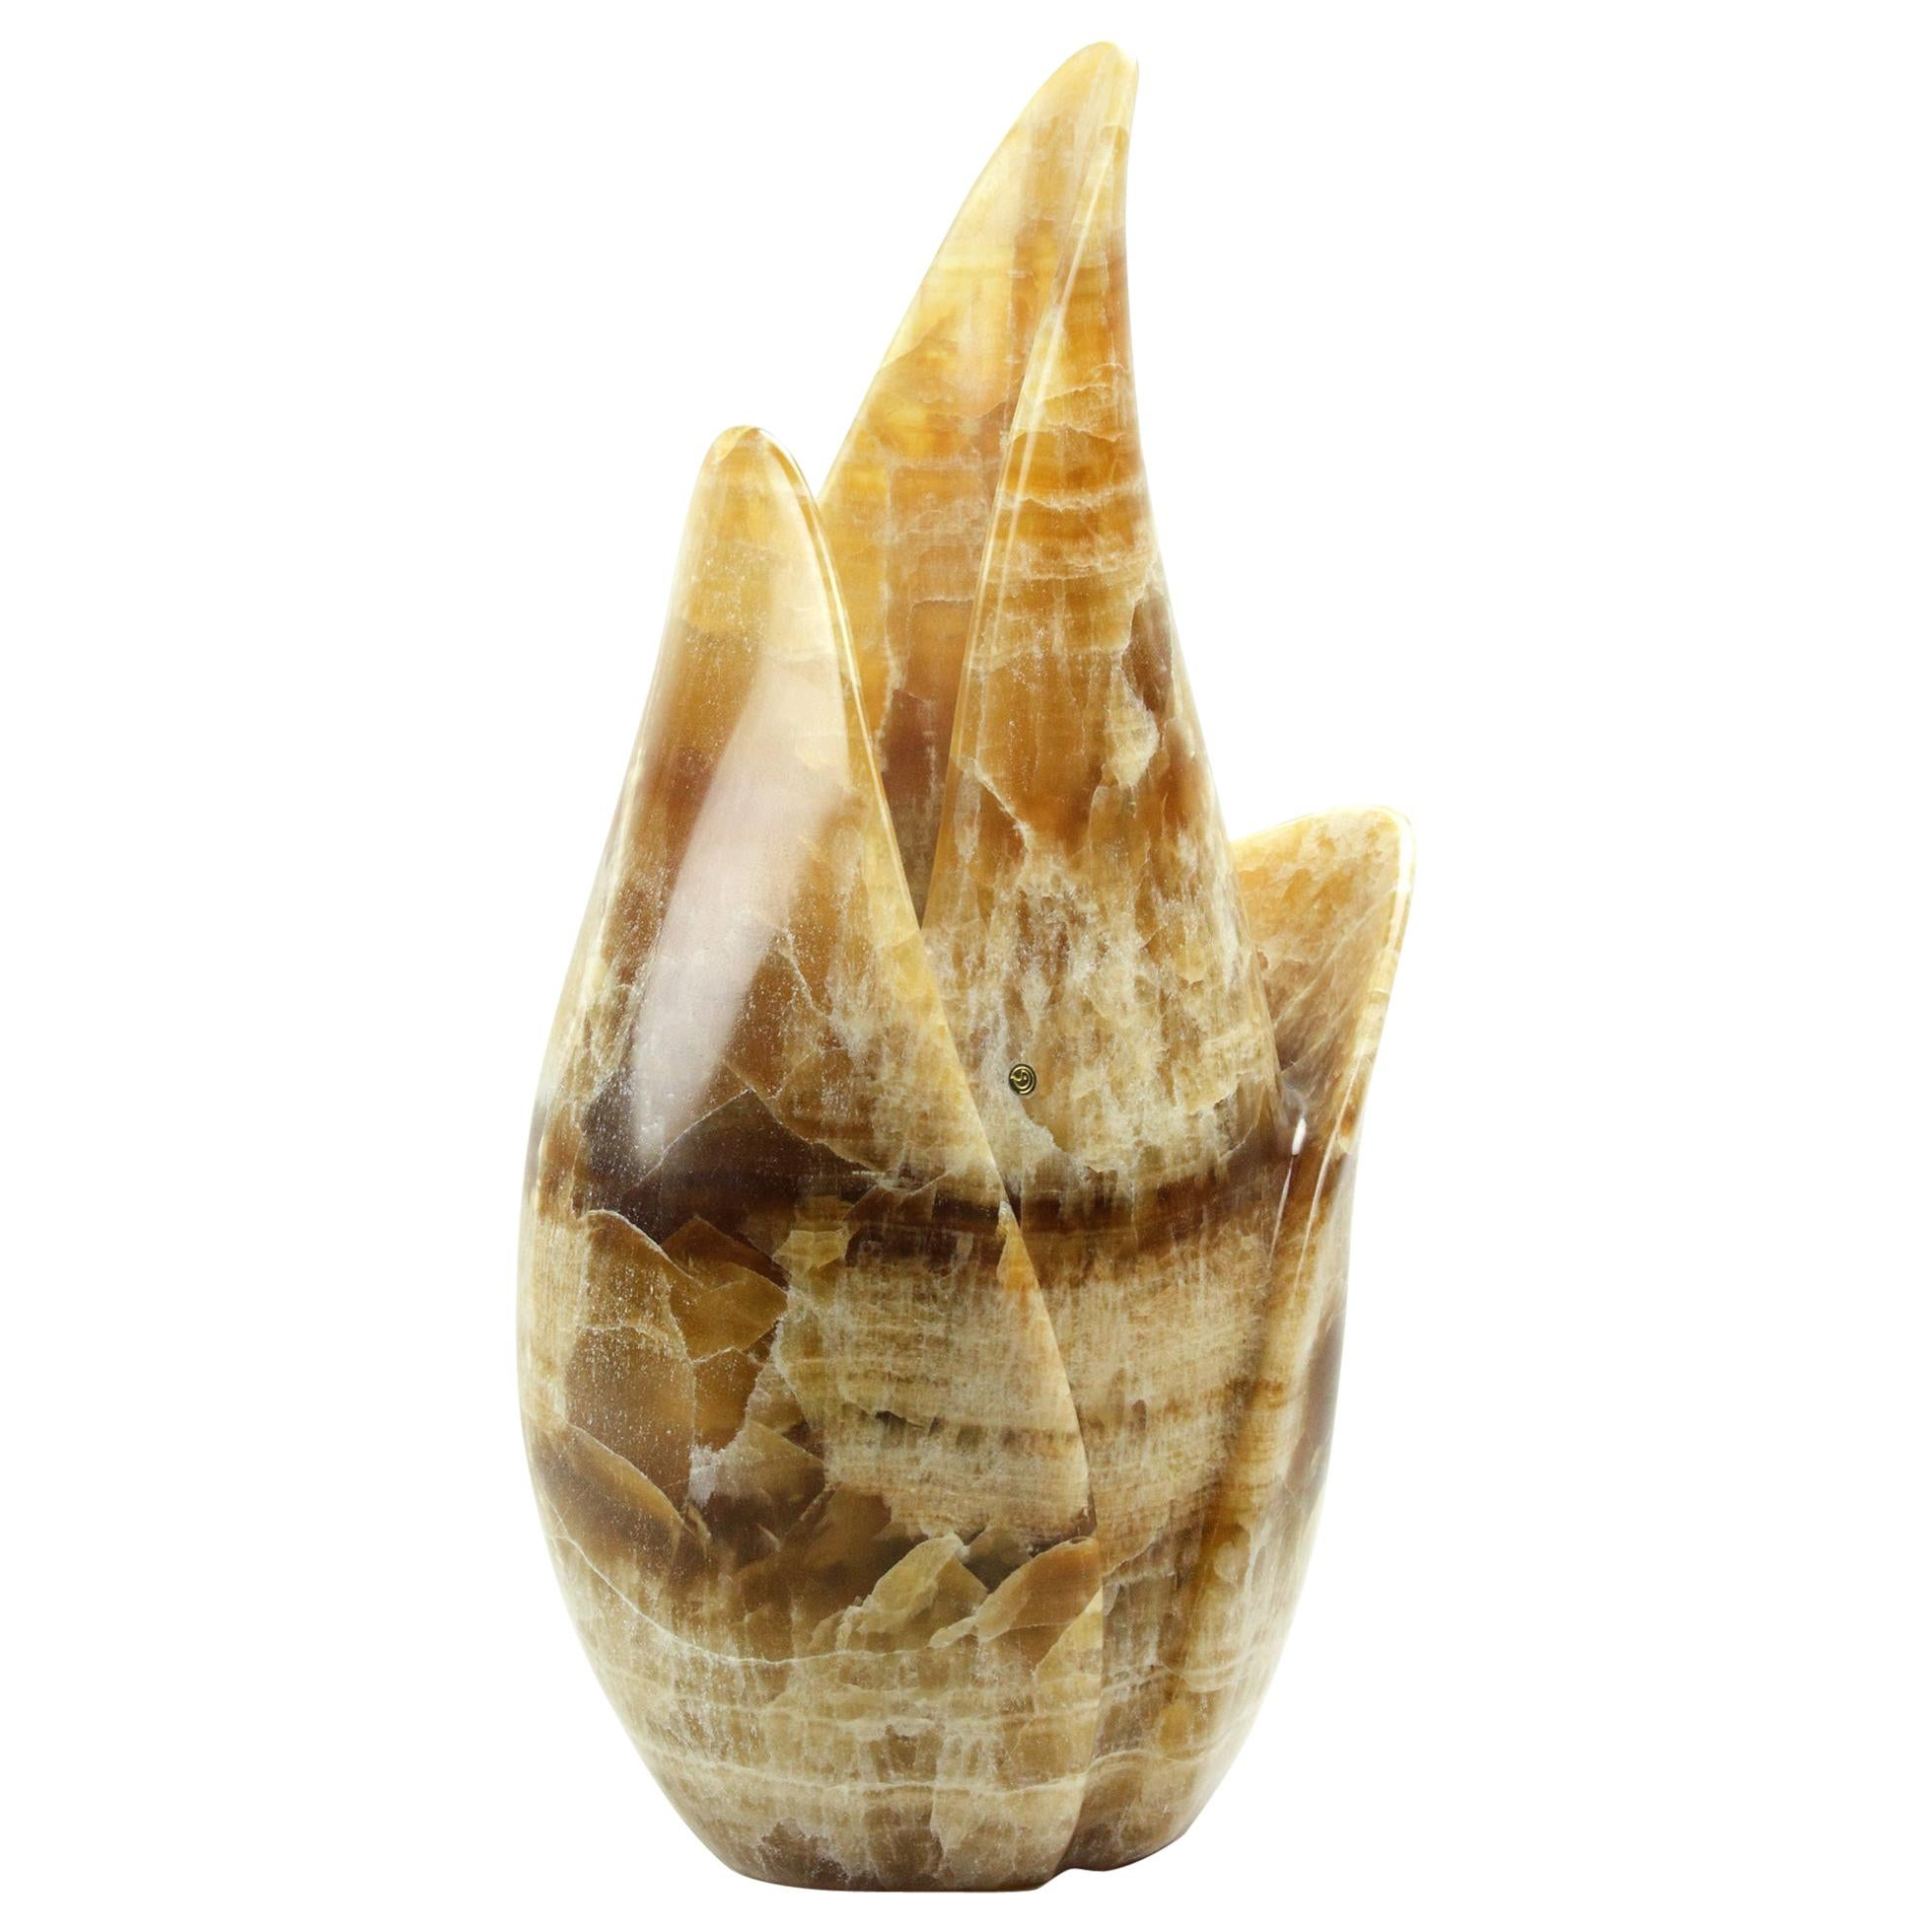 Vase Sculpture Handmade from Solid Block of Amber Onyx by Pieruga Marble, Italy